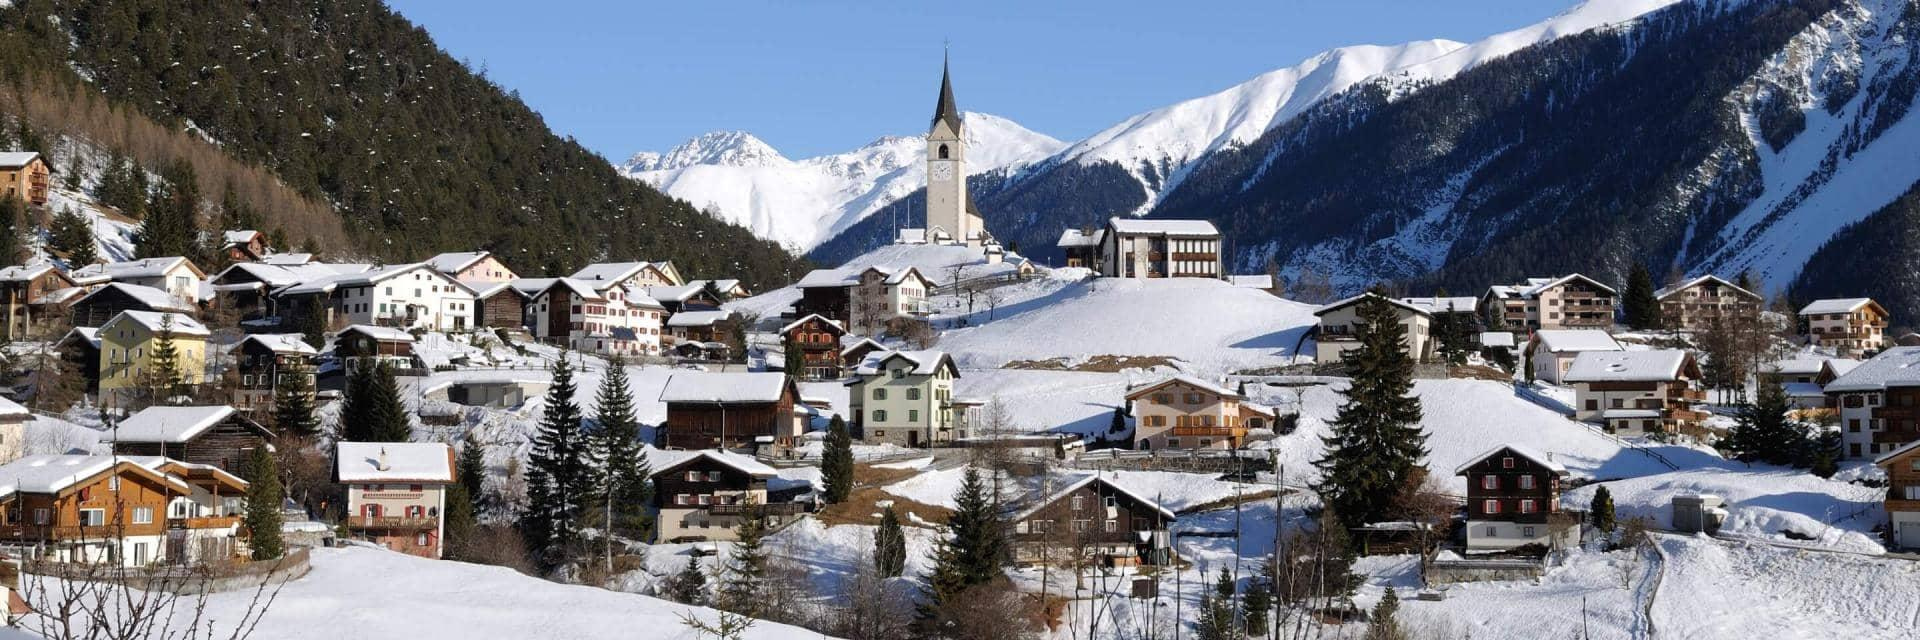 Picture of the village of Davos in Switzerland